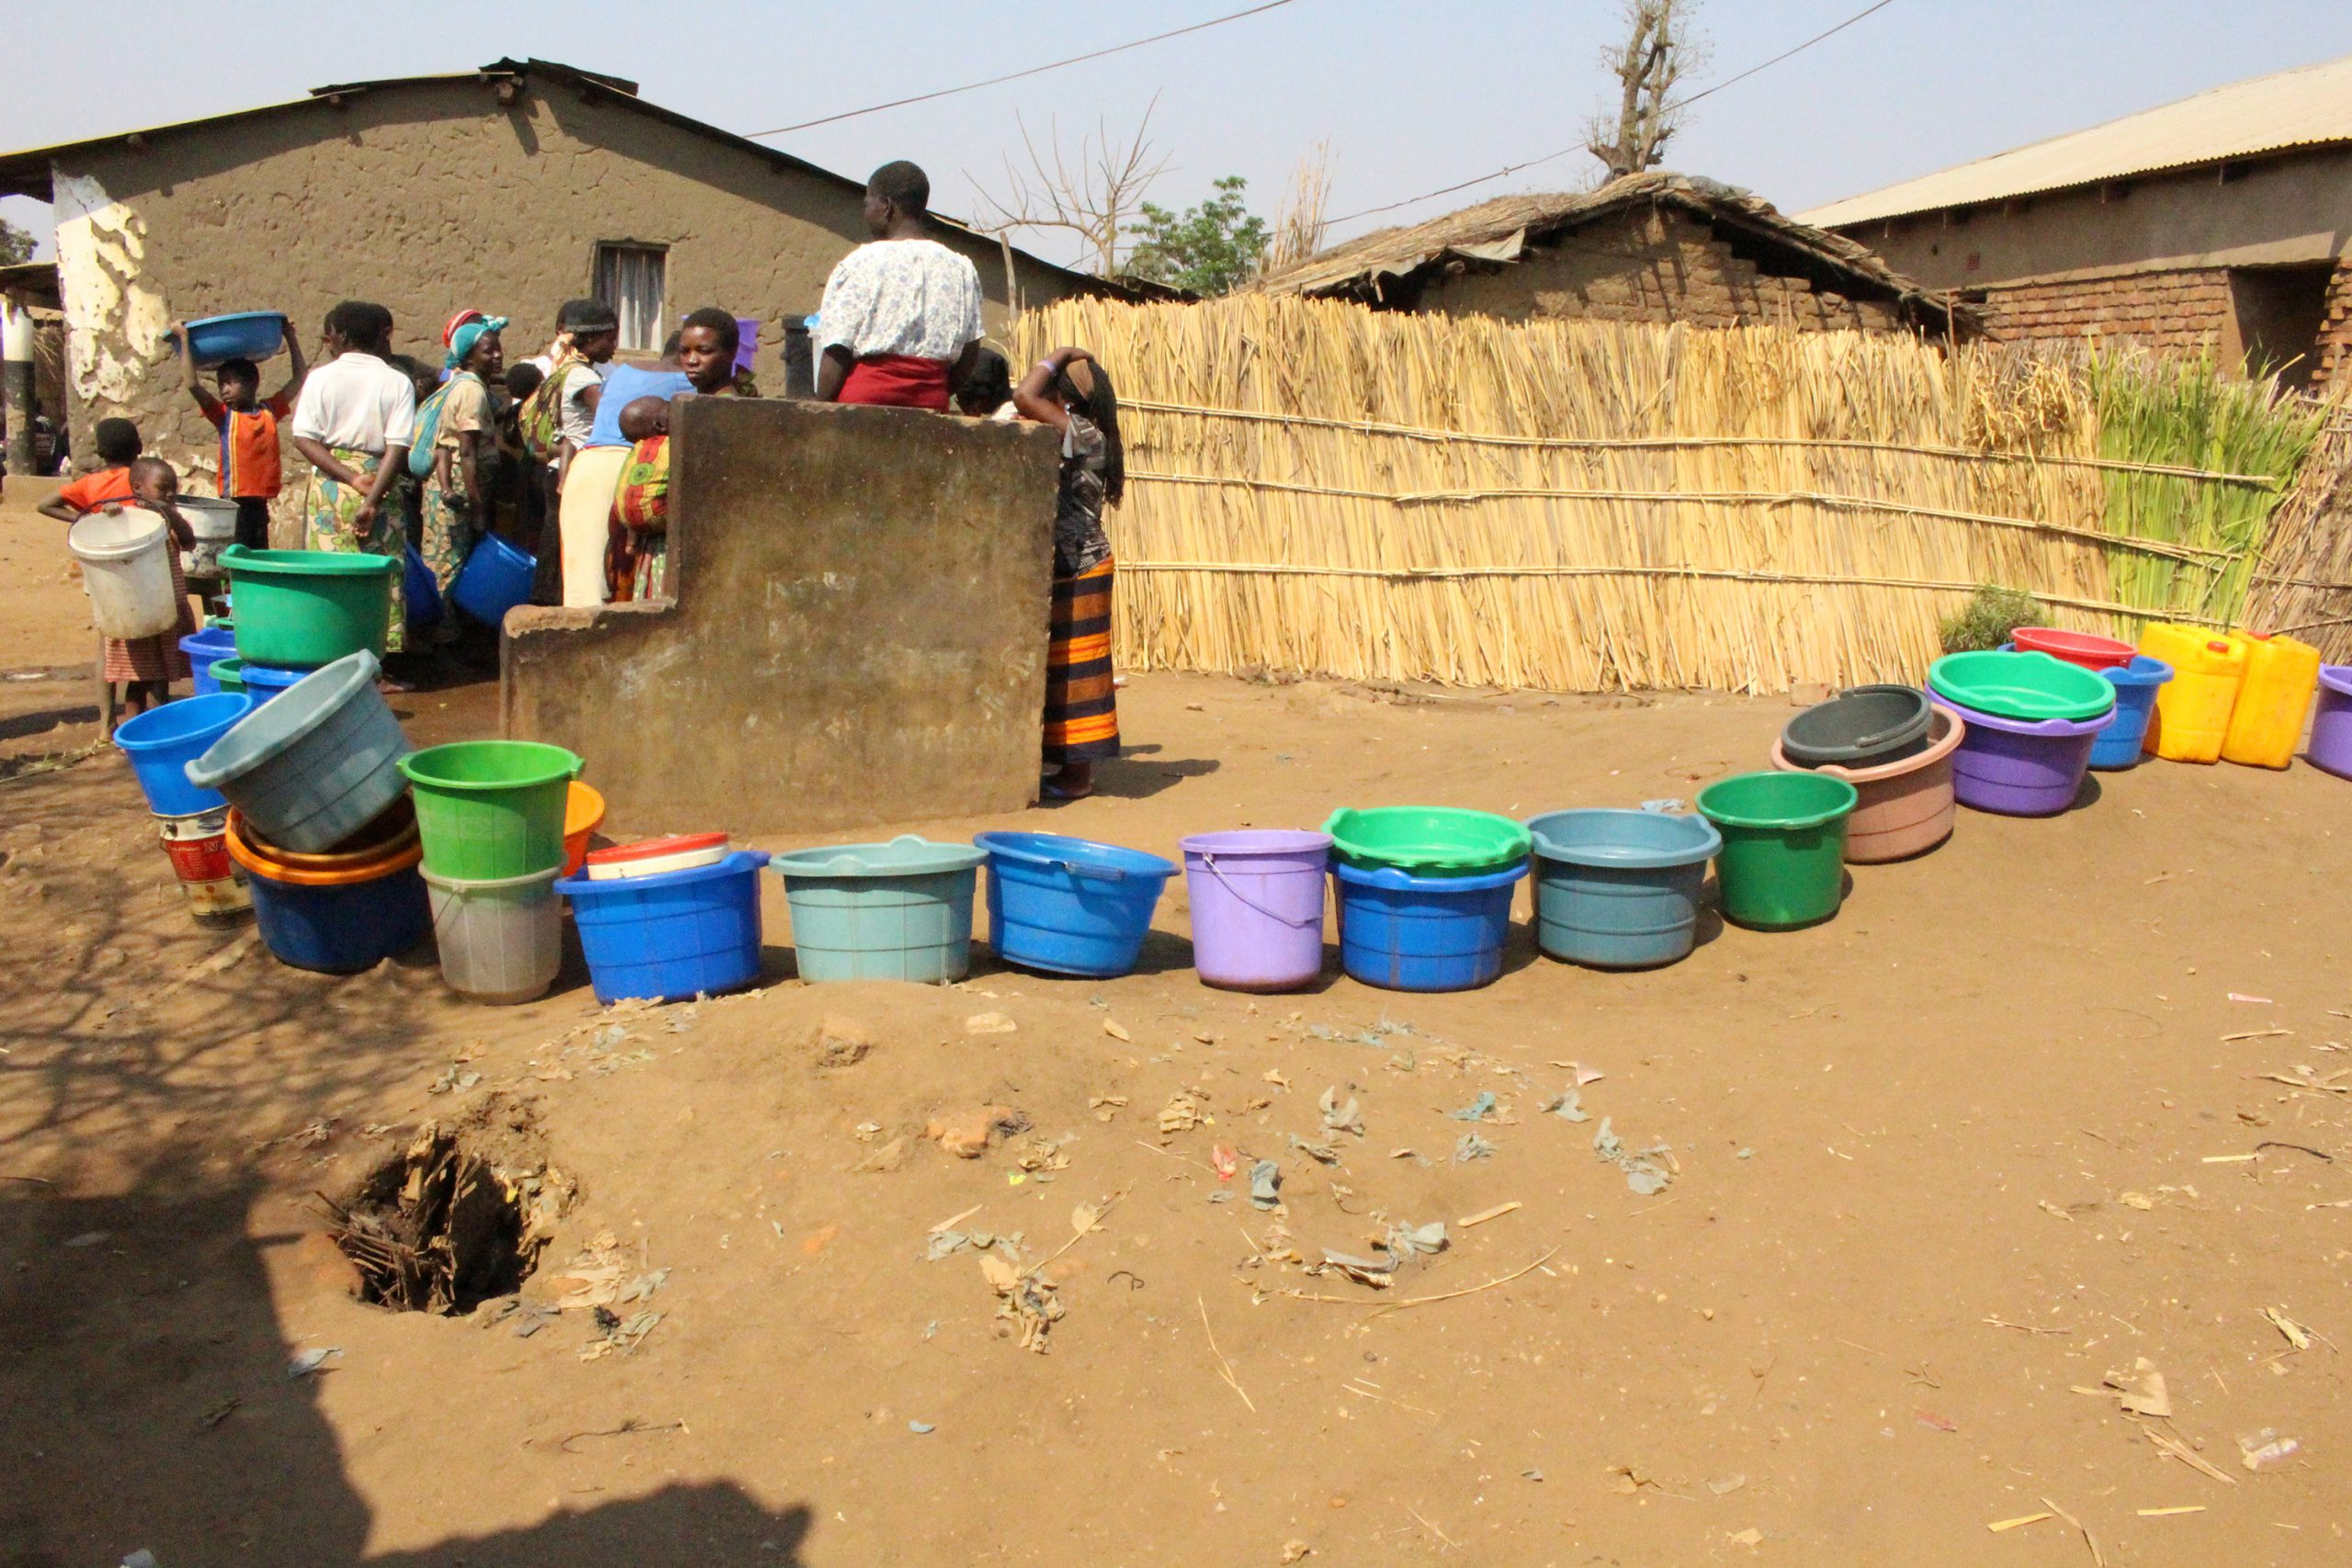 Women and girls stand near a line of colorful plastic water buckets outside a well in Lilongwe, Malawi